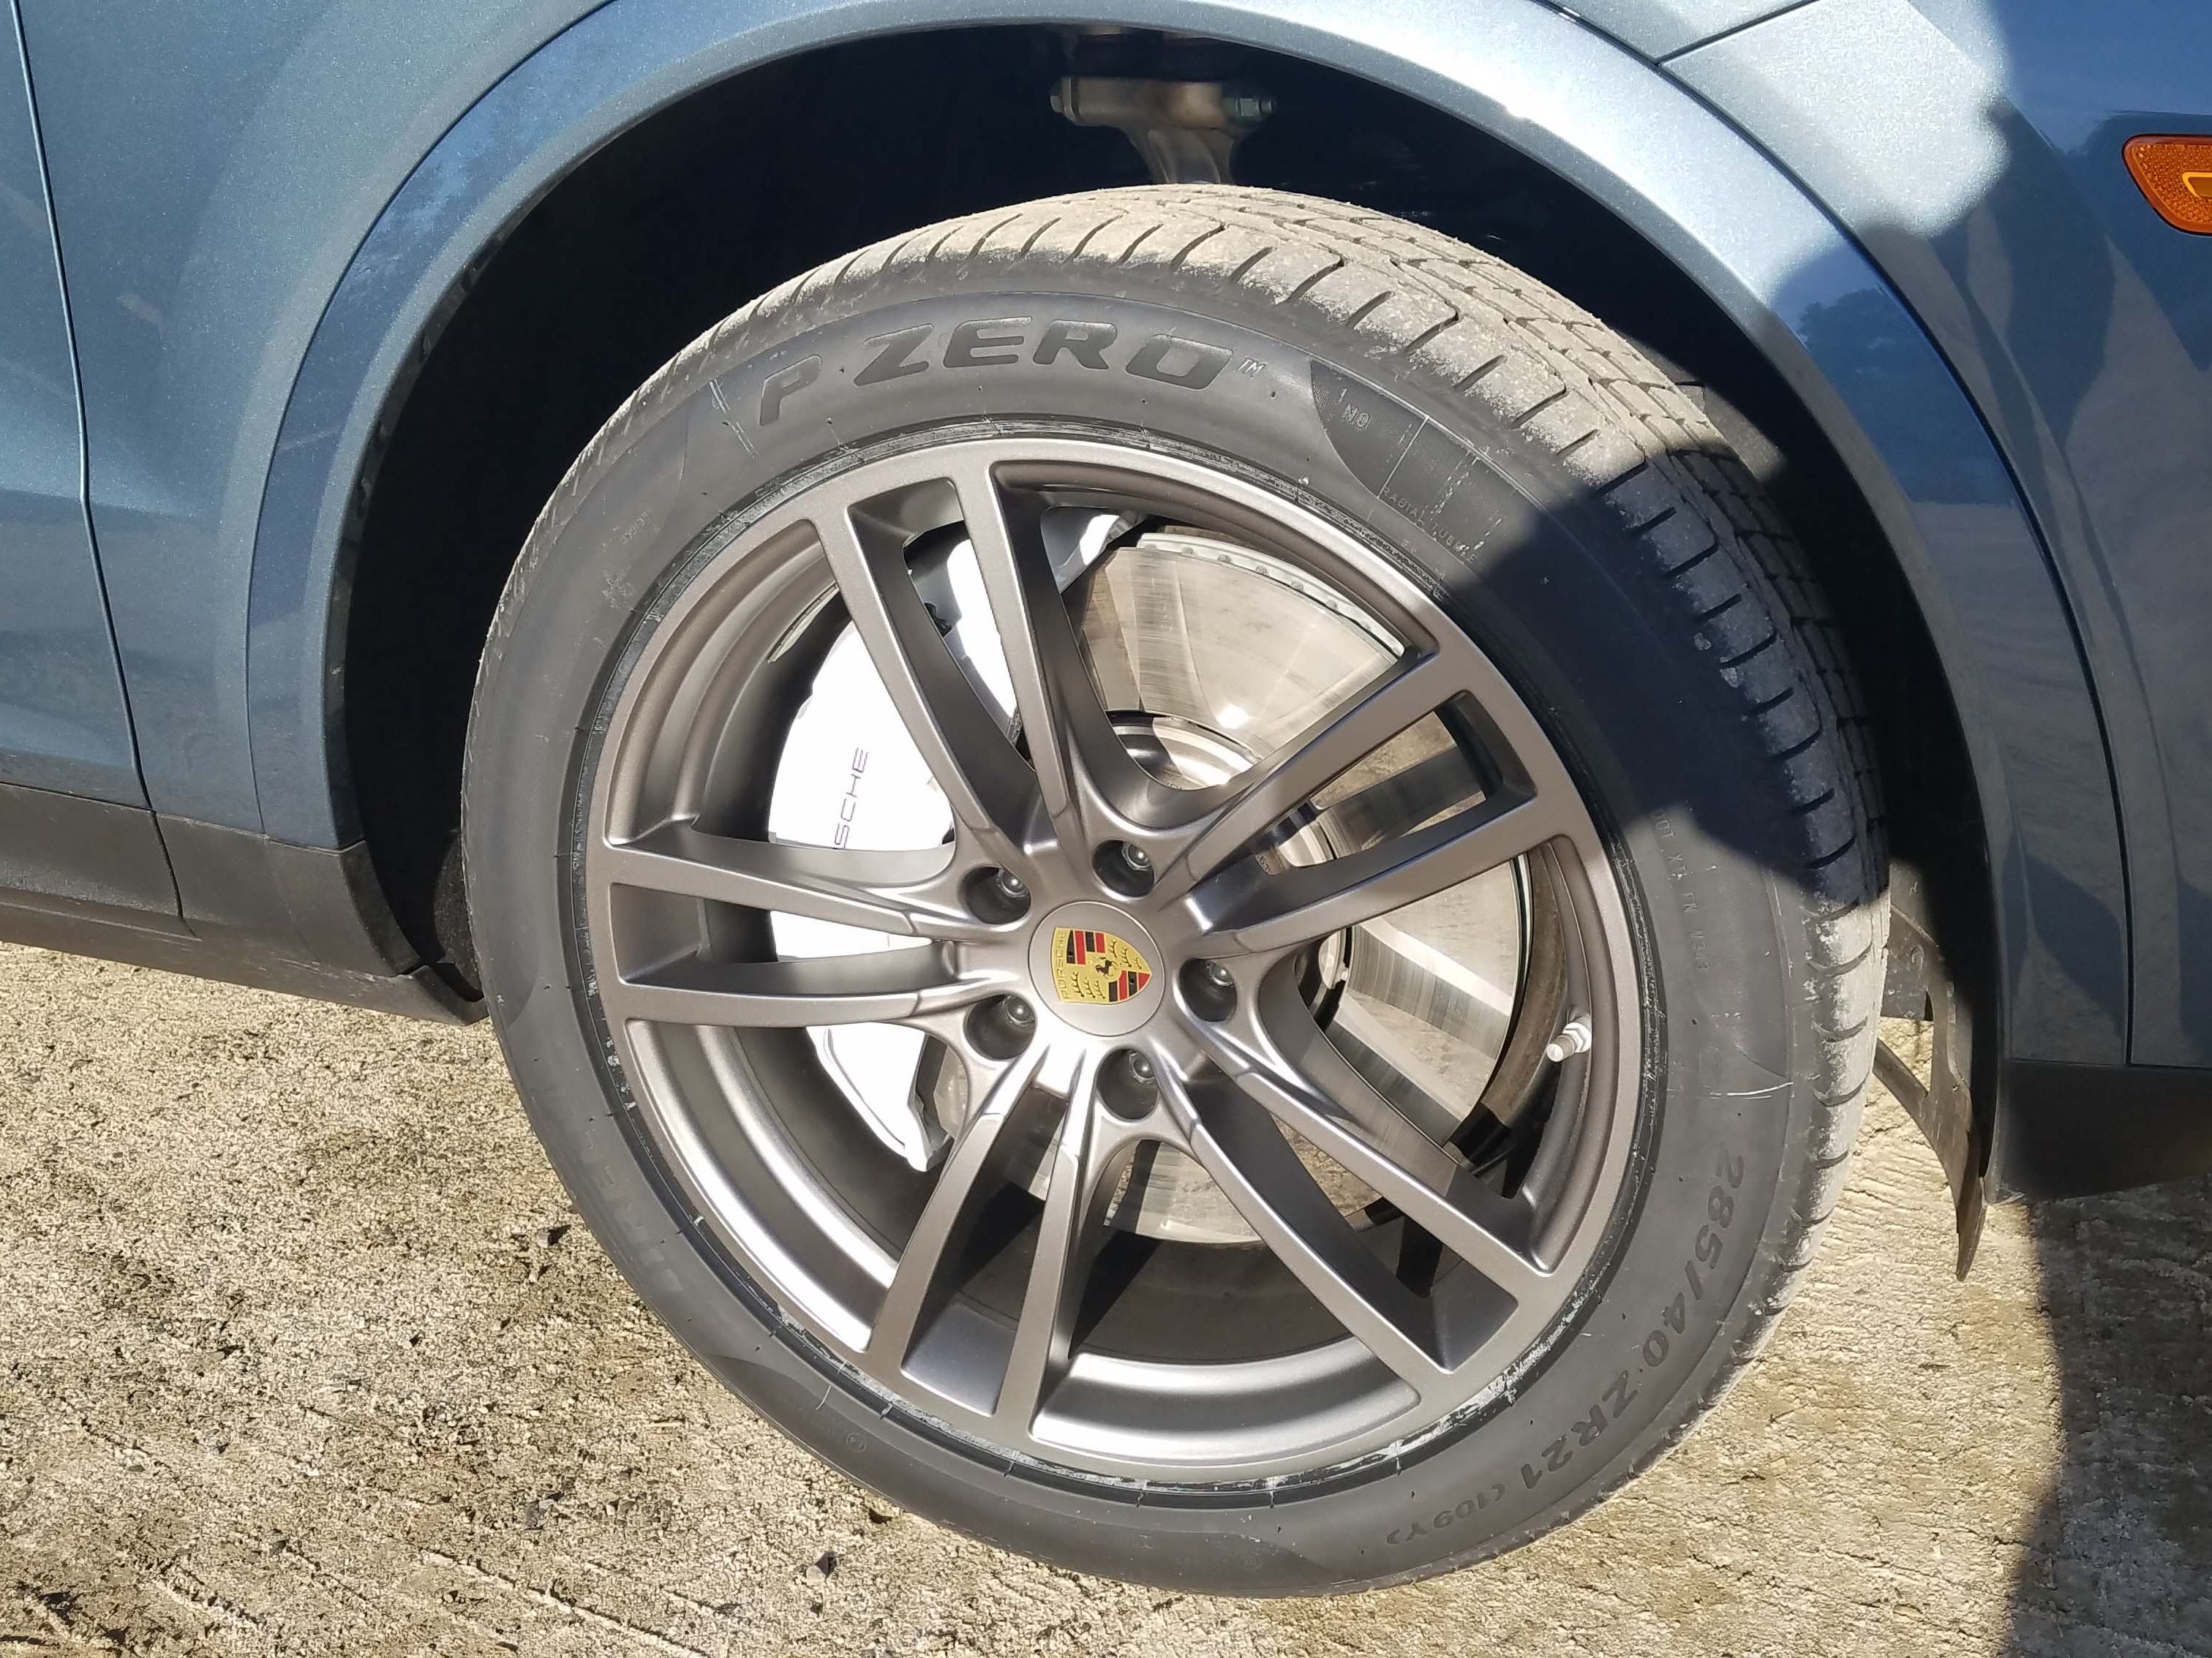 Porsche's surface-coated brakes are a special option to help stop the big ute. The brake package includes huge, 10-pot calipers.